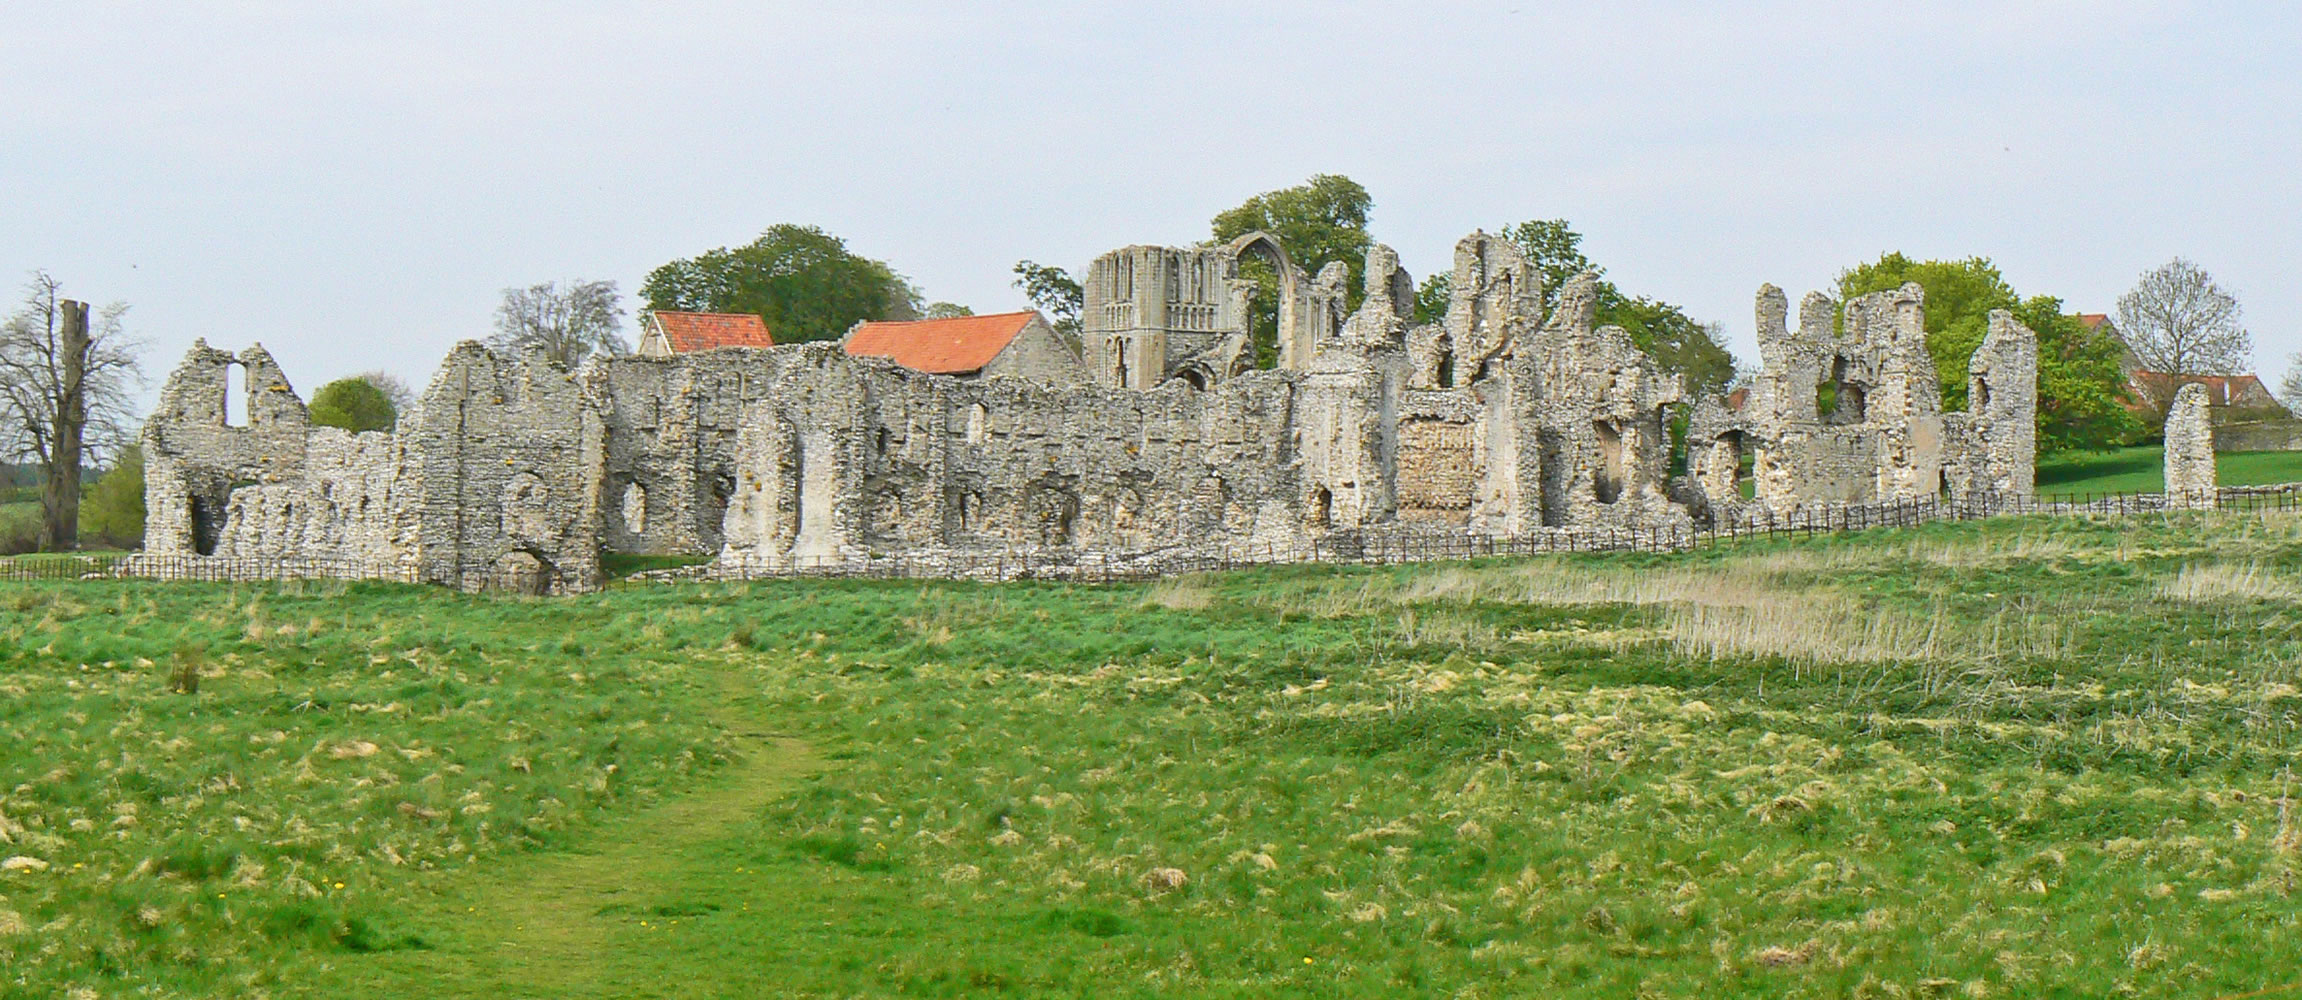 Castle Acre Norfolk Including Castle Priory Peddars Way And